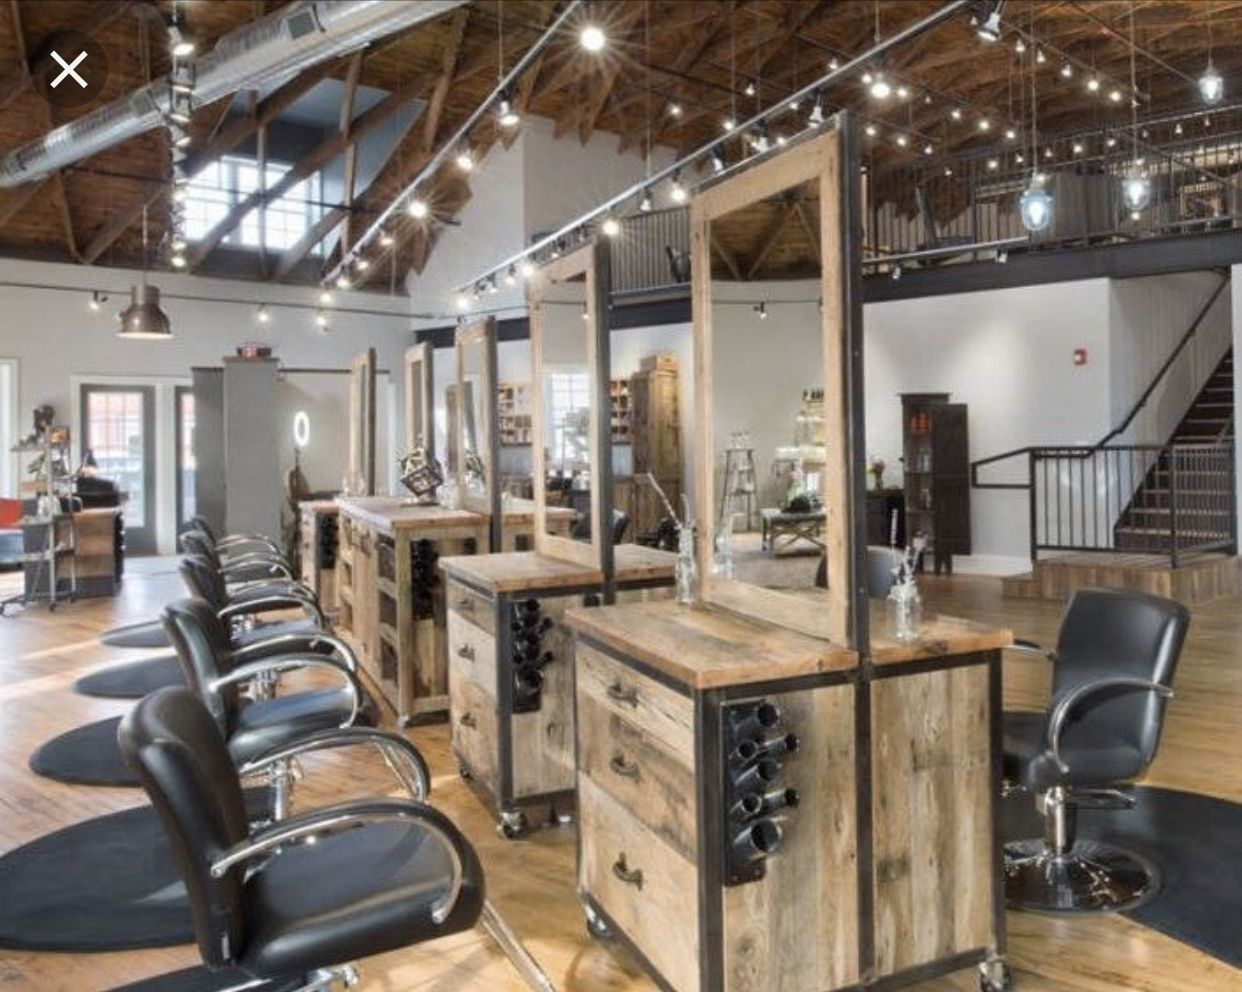 Misunderstood Rustic Salon Decor Rustic Salon Hair Salon Interior